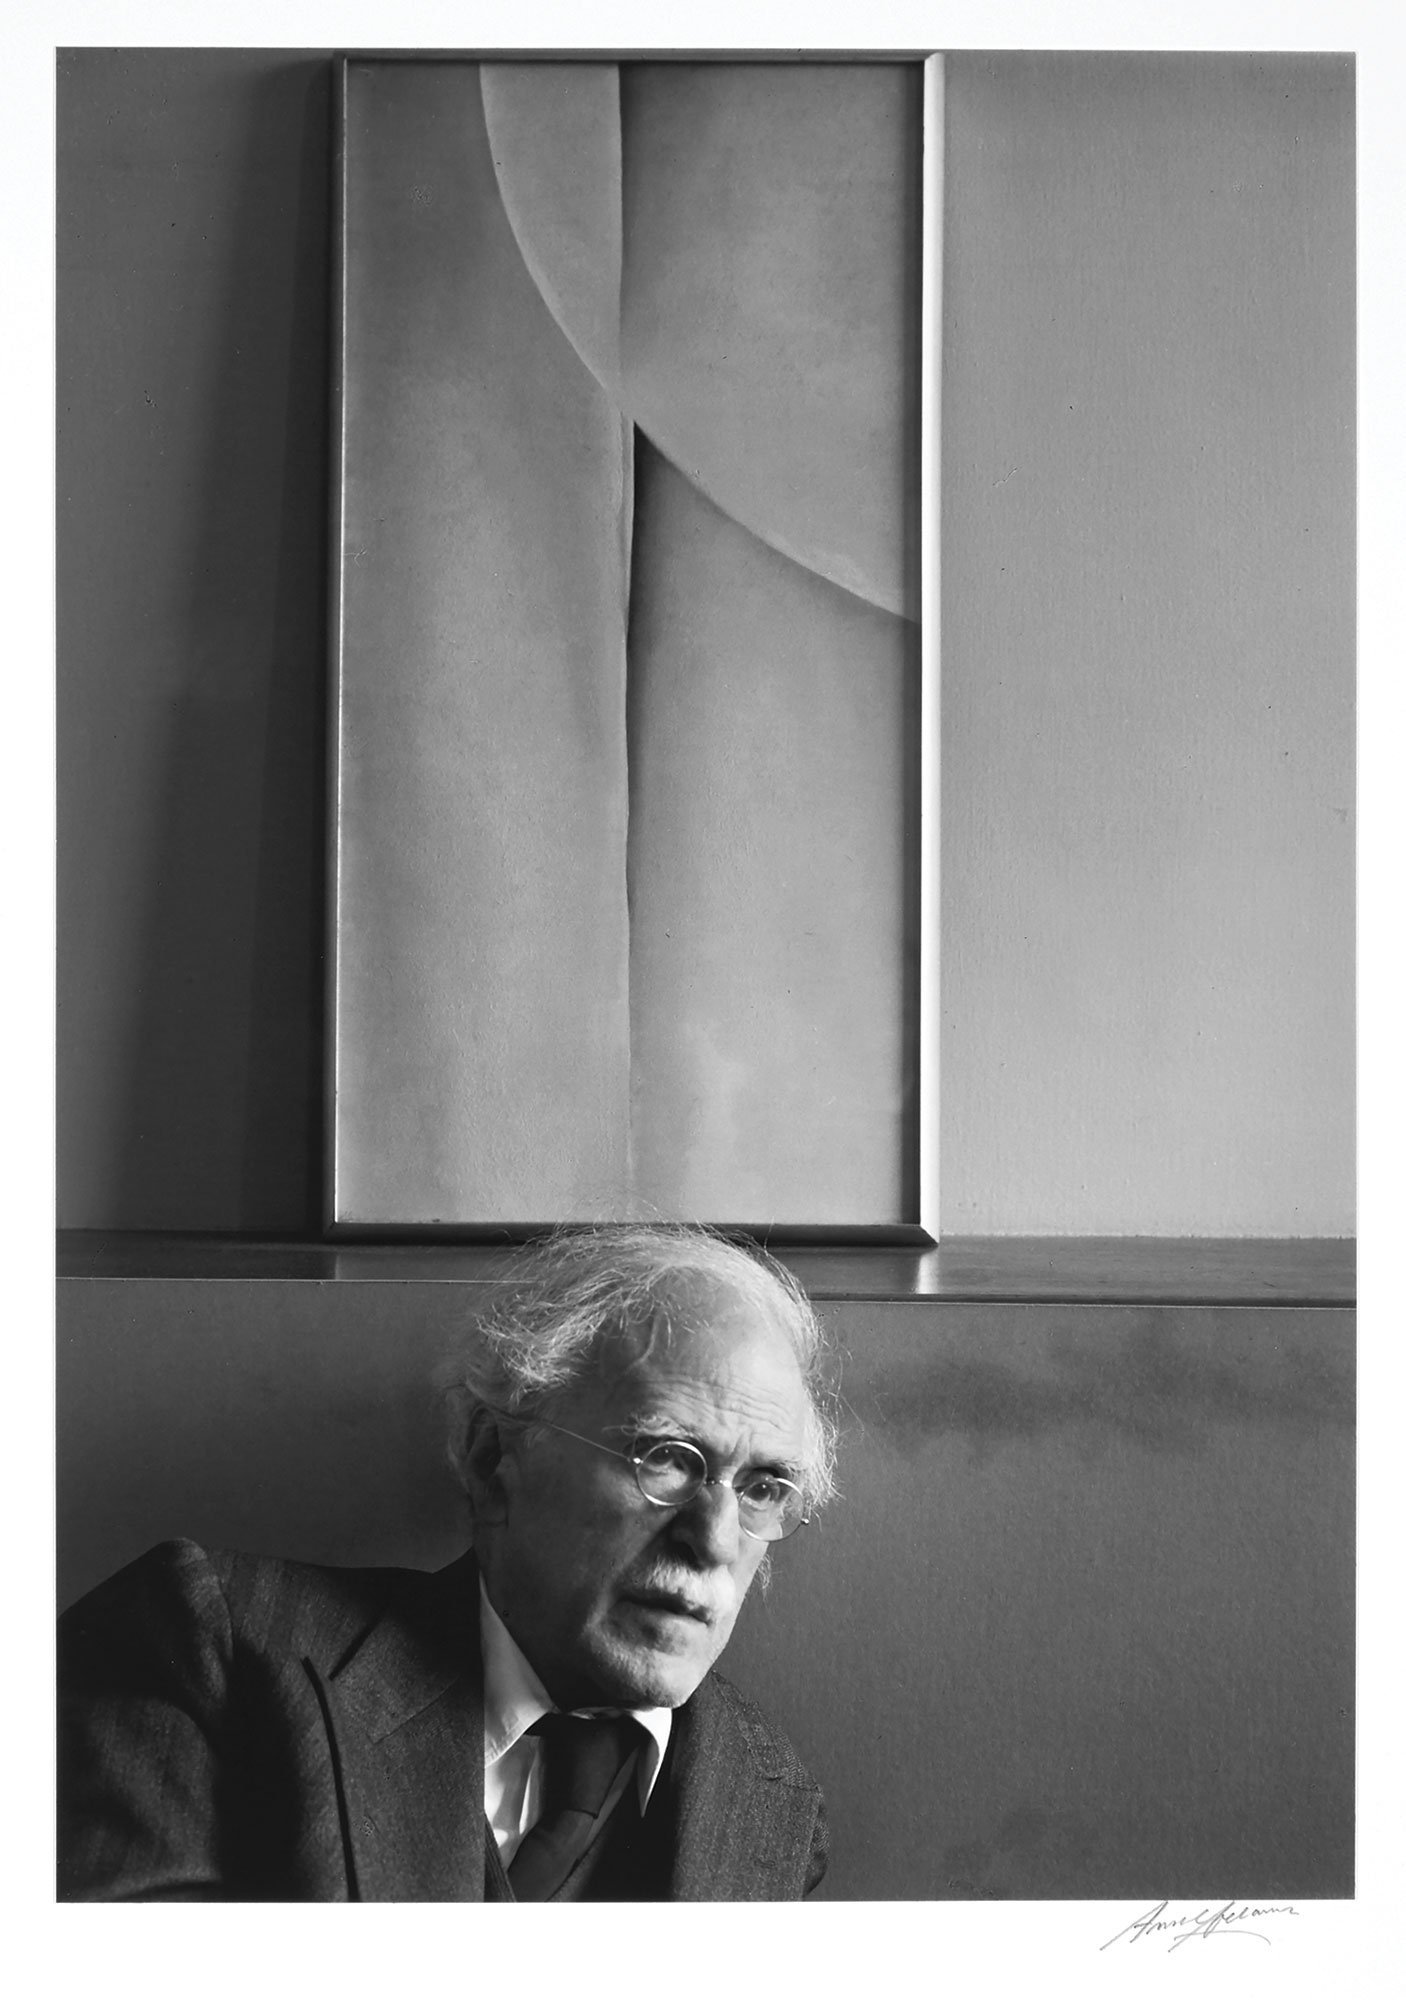 Lot image - ADAMS, ANSEL (1902-1984)  Alfred Stieglitz and Painting by Georgia OKeeffe, at An American Place, New York City,